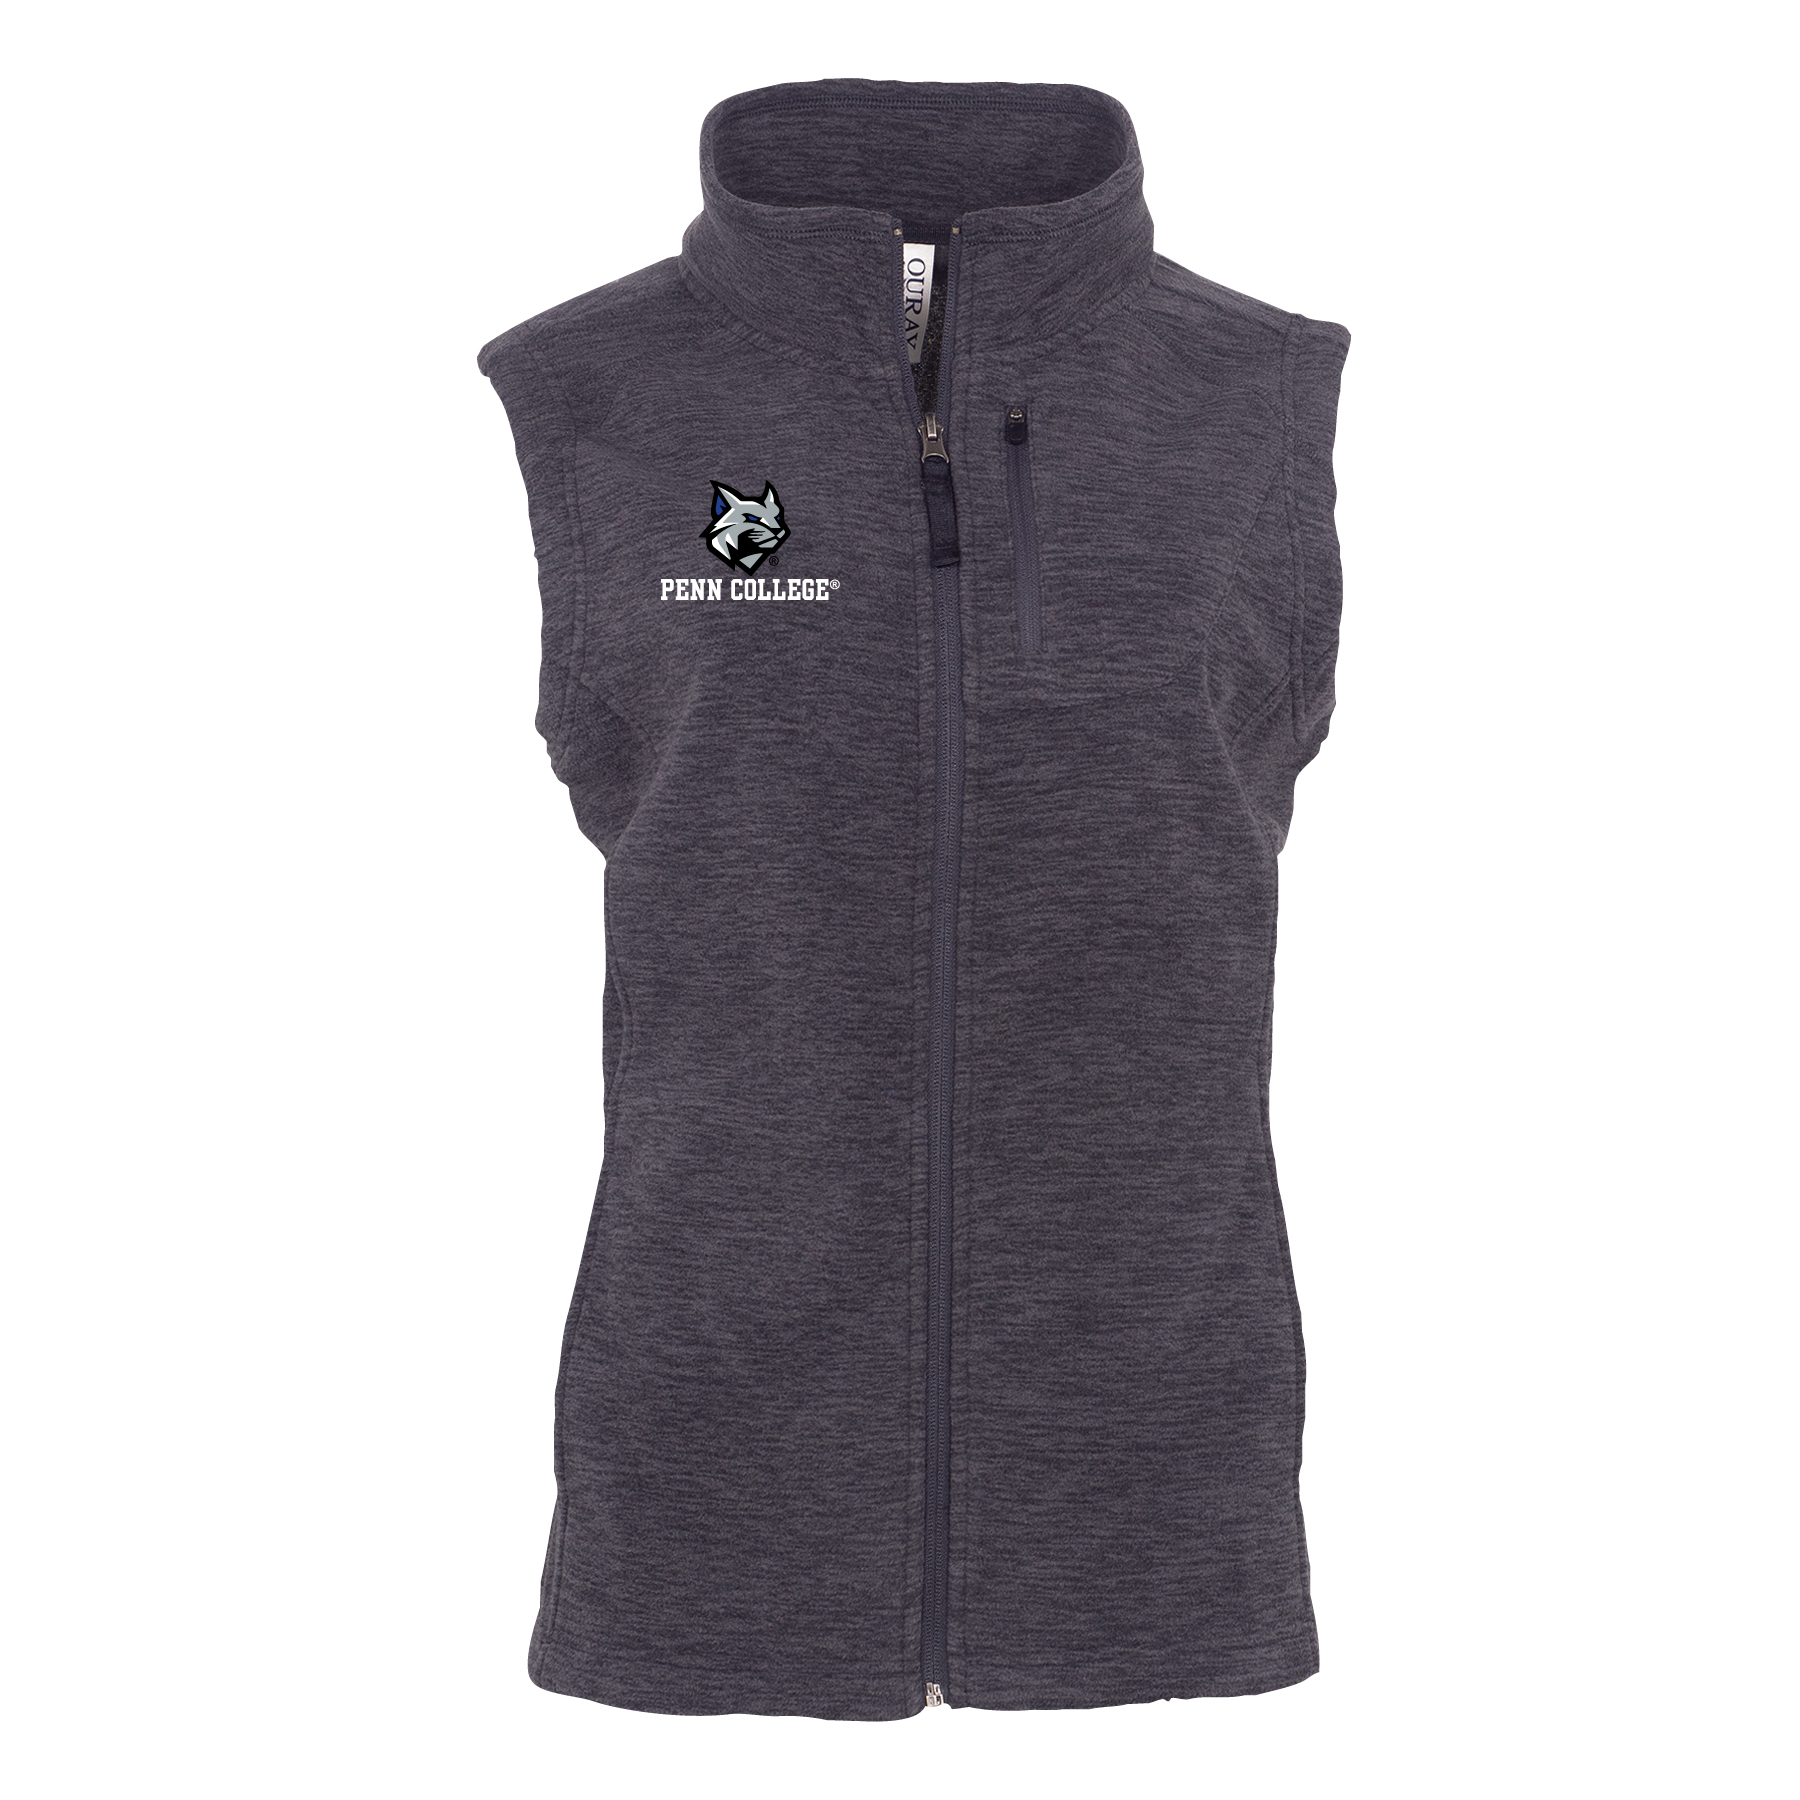 Image For Ladies Fleece Vest - Available in 2 colors!